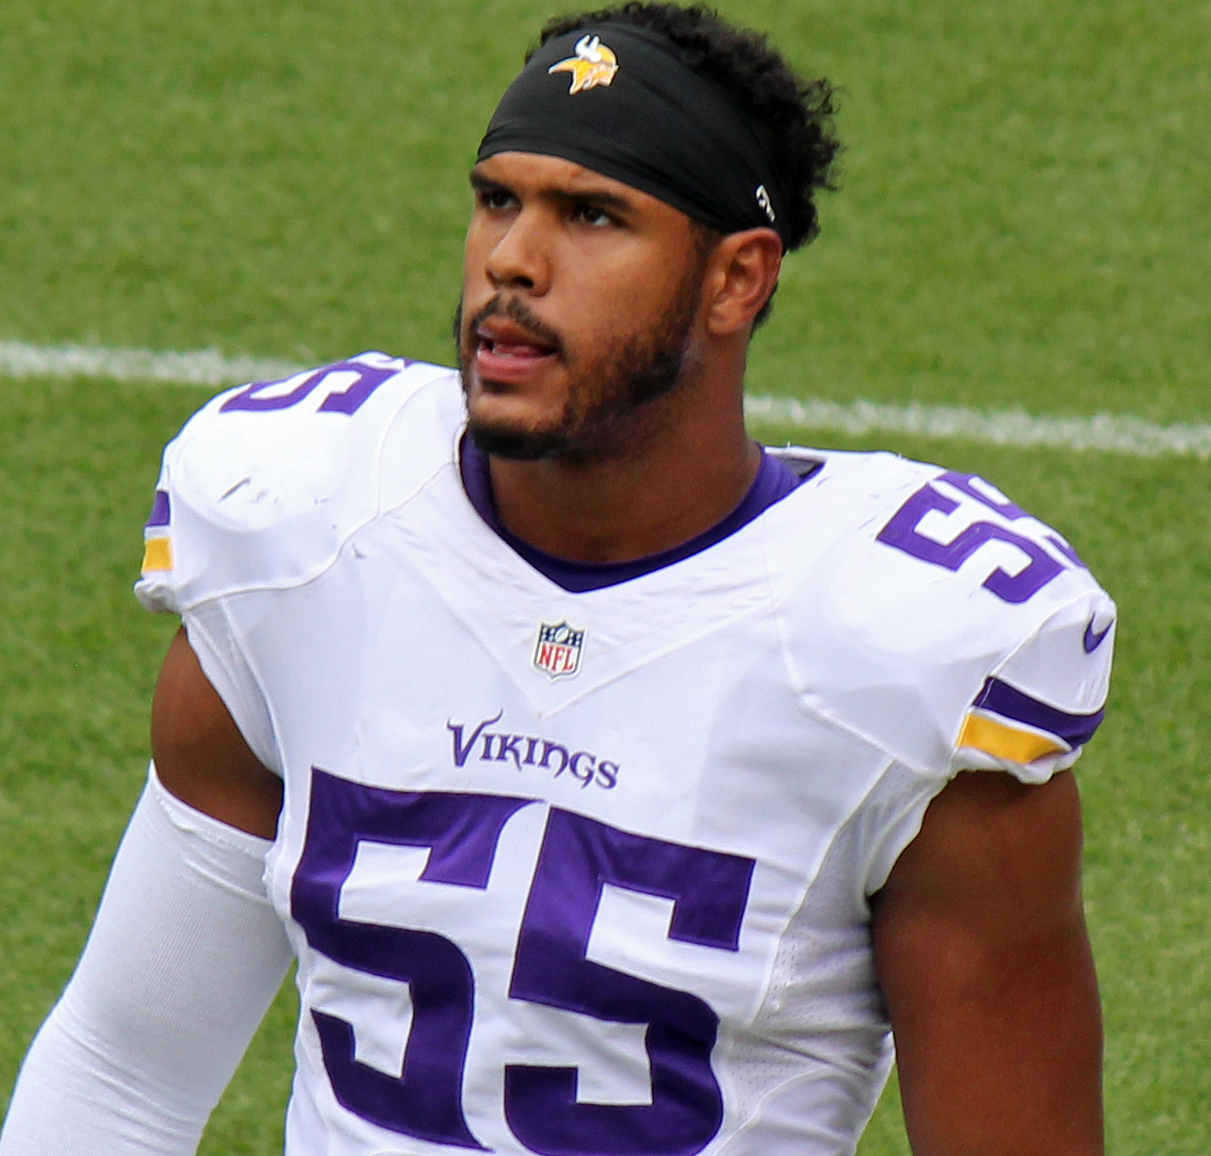 e6e1fa6d Anthony Barr (American football) - Wikipedia